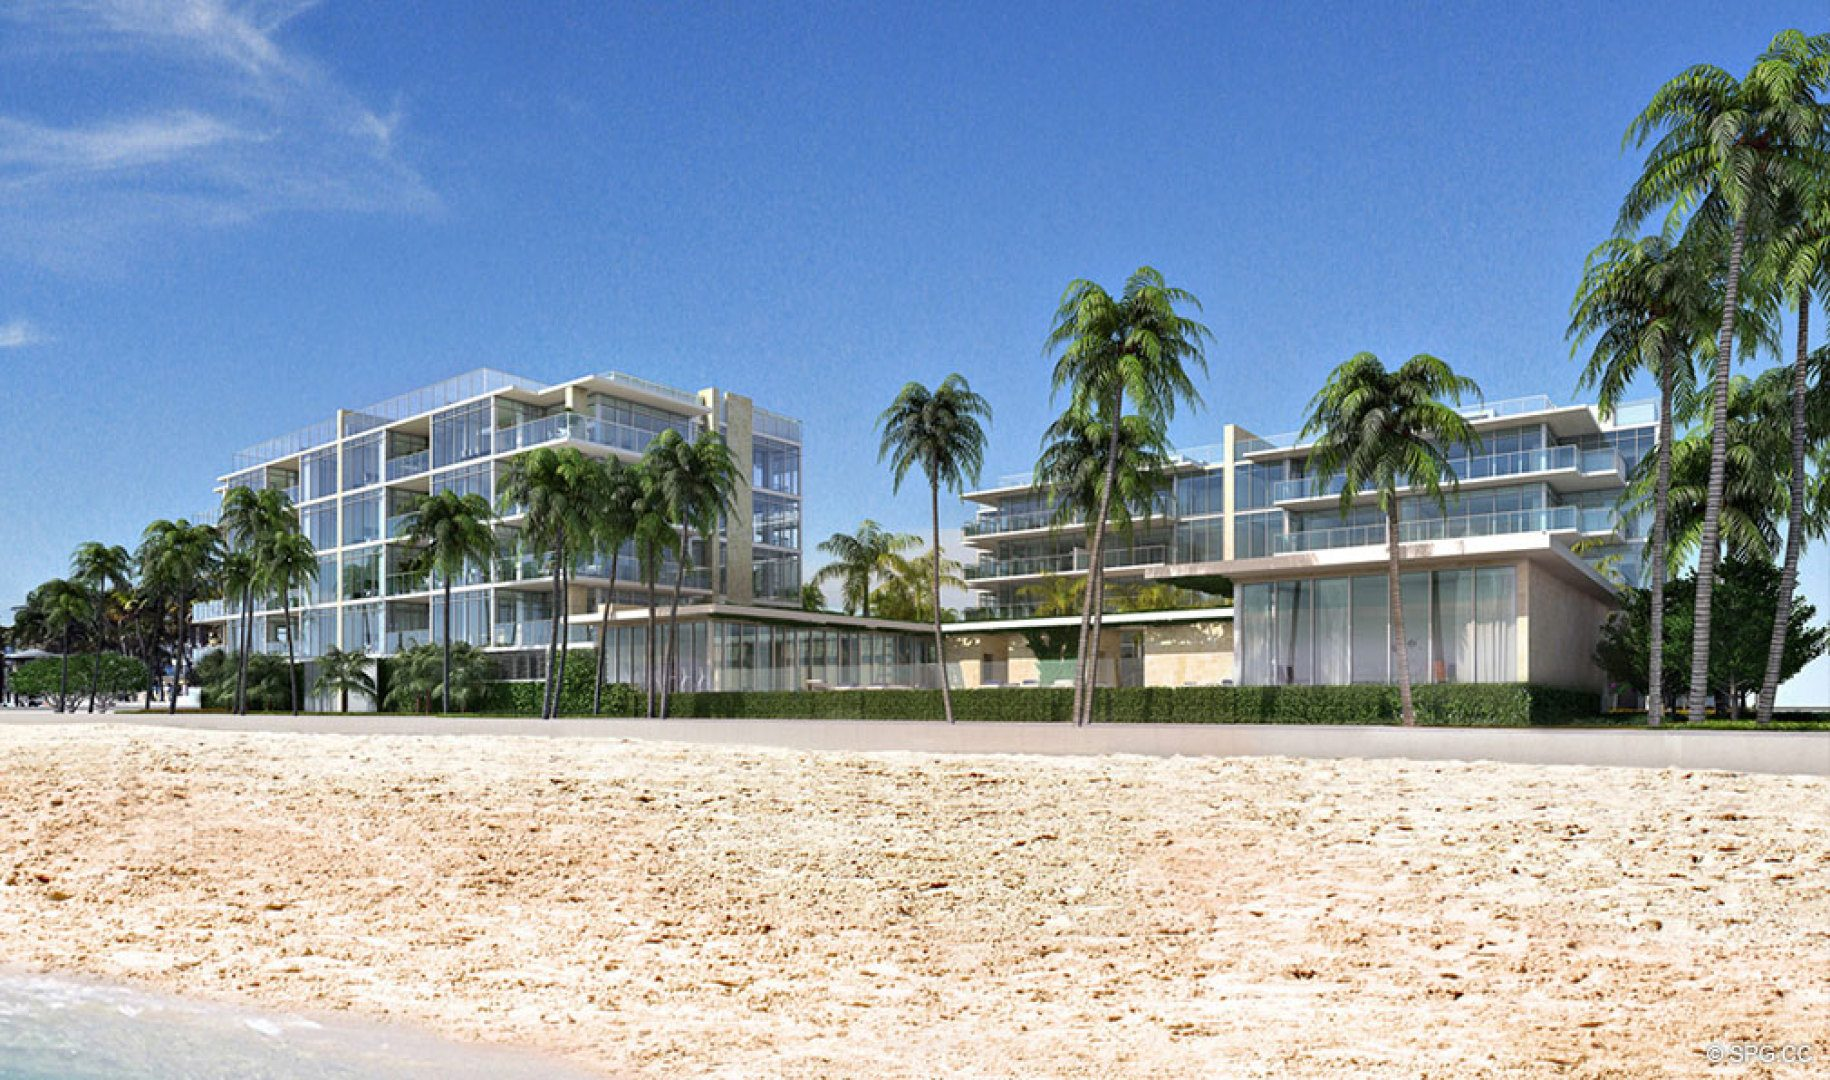 View from the Sand of Sage Beach, Luxury Oceanfront Condos in Hollywood Beach Florida 33019